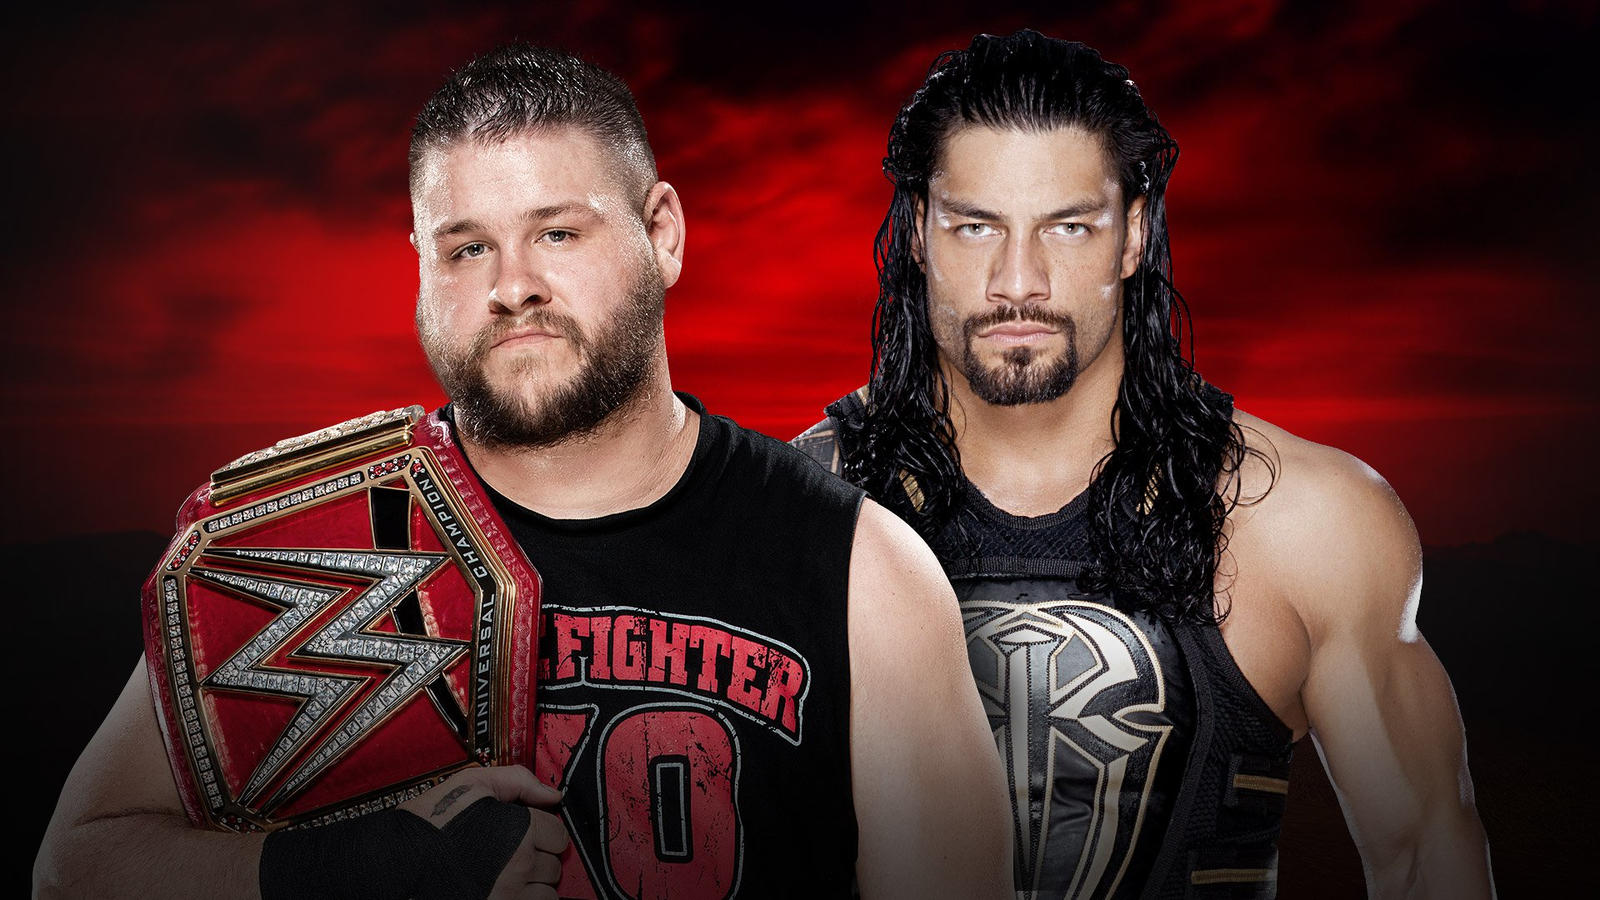 Confirmed and Potential Matches for WWE Royal Rumble 2017 20170109_RoyalRumble_OwensRoman--bc77331e13a3a047e23e11d8042adcff